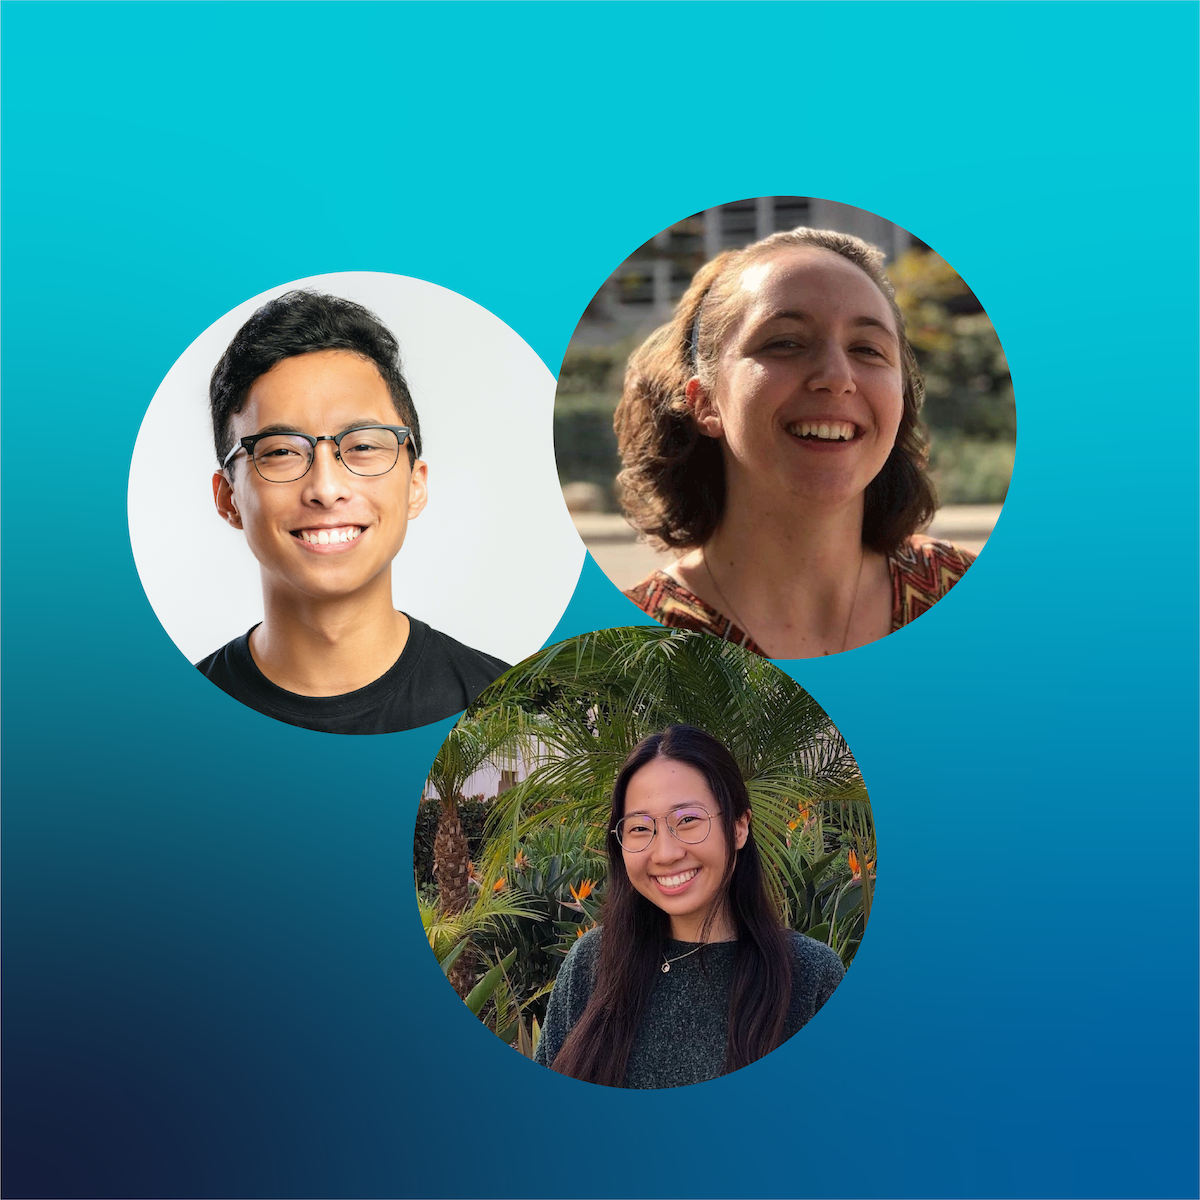 UCSD & Design Lab Students Participate In The Civic Digital Fellowship Program